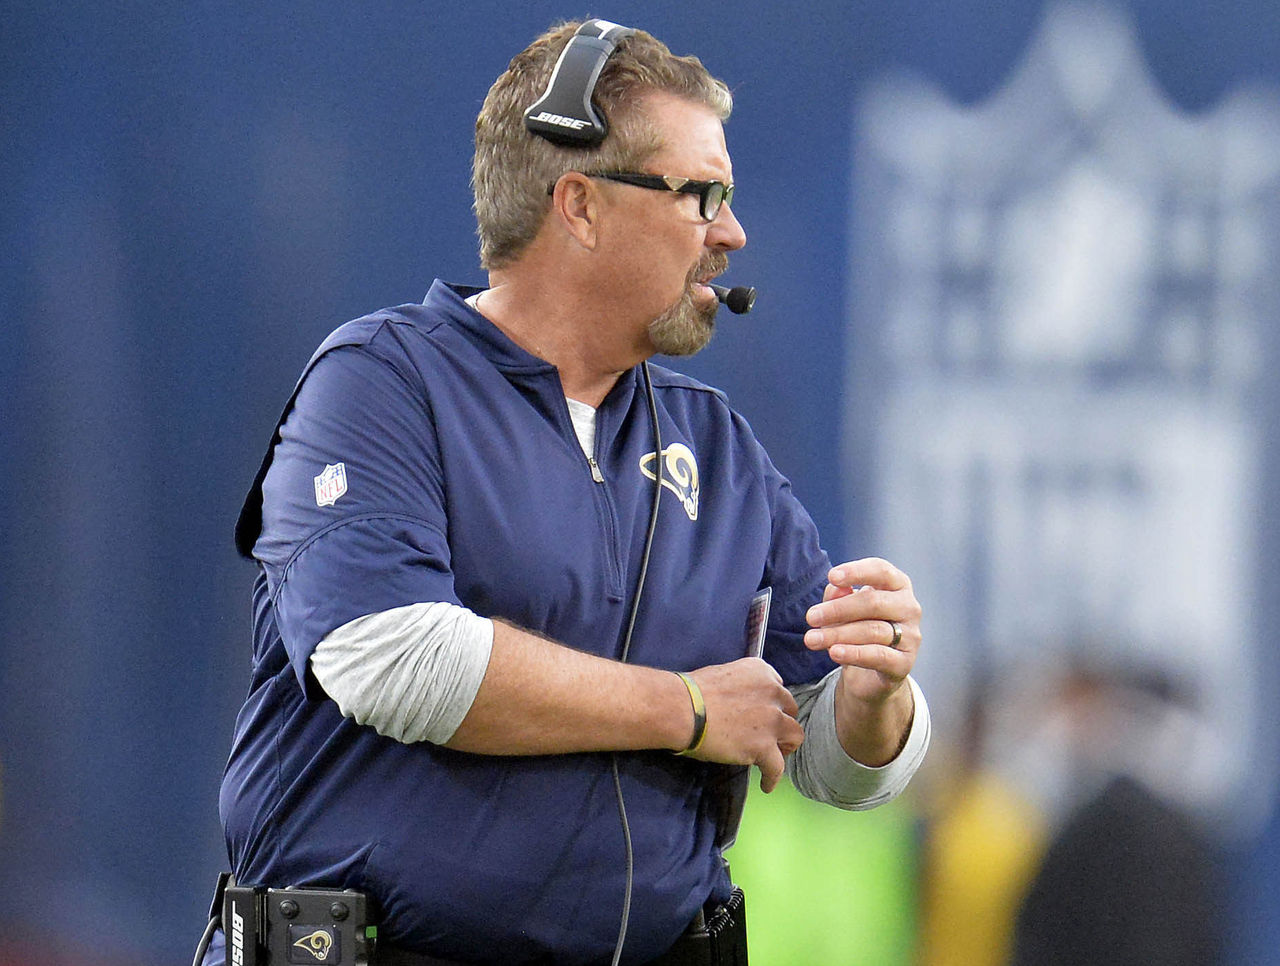 Cropped 2017 01 02t010438z 1043779363 nocid rtrmadp 3 nfl arizona cardinals at los angeles rams  1